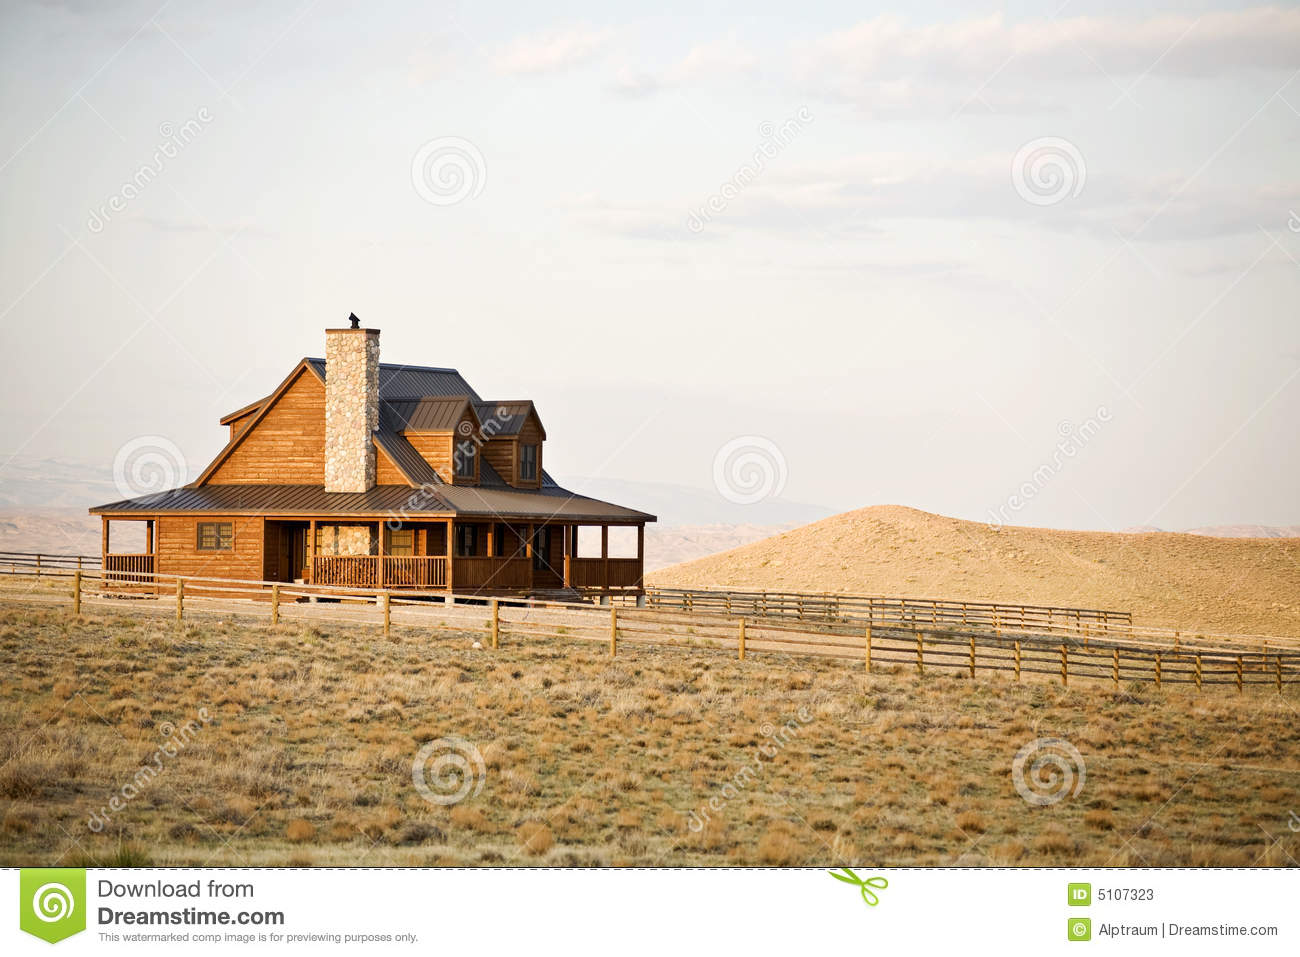 Ranch house in midwest stock photos image 5107323 for Midwest house plans